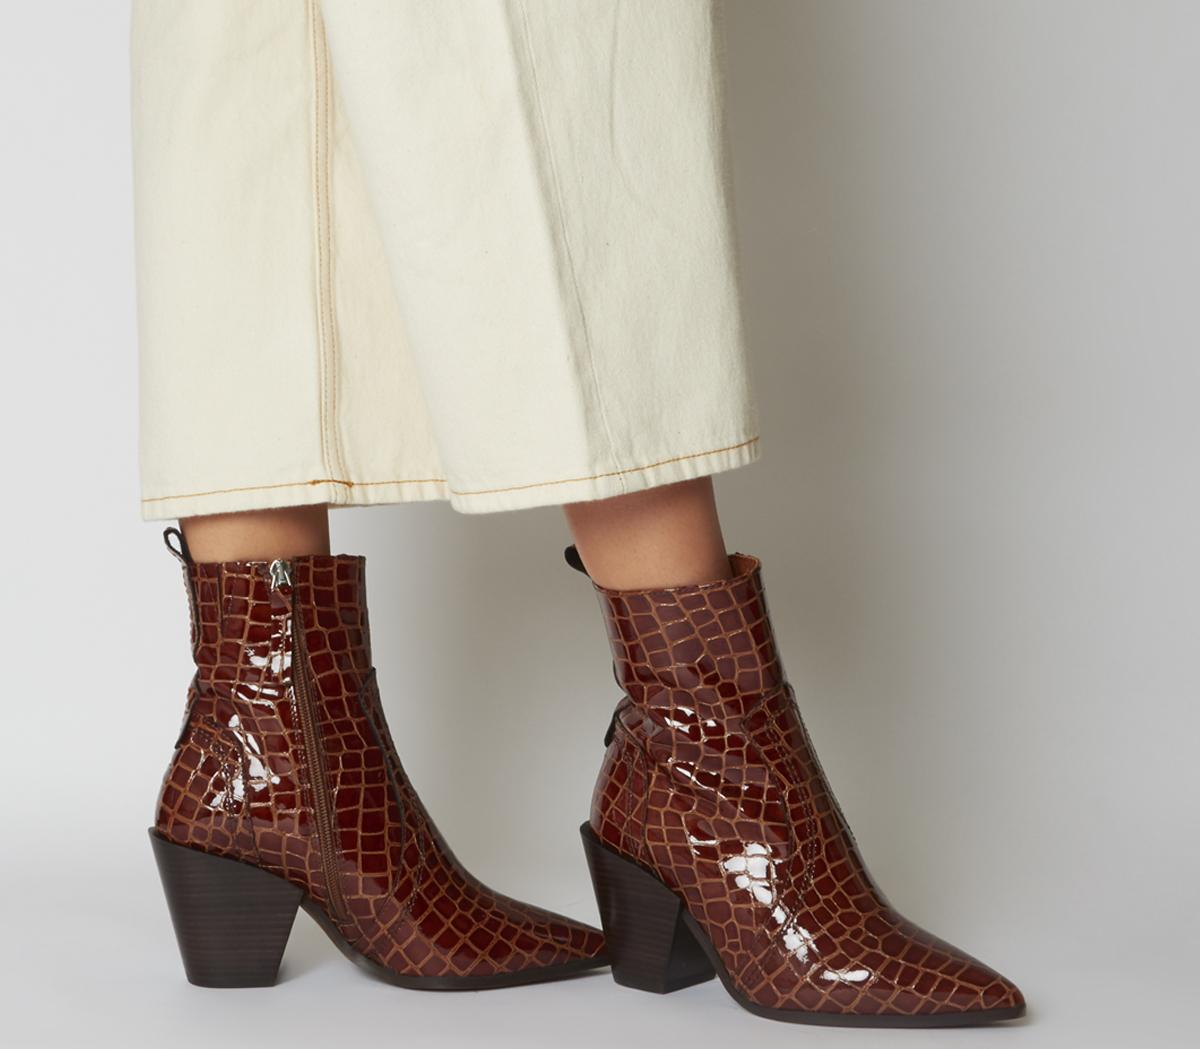 Avail Western Boots